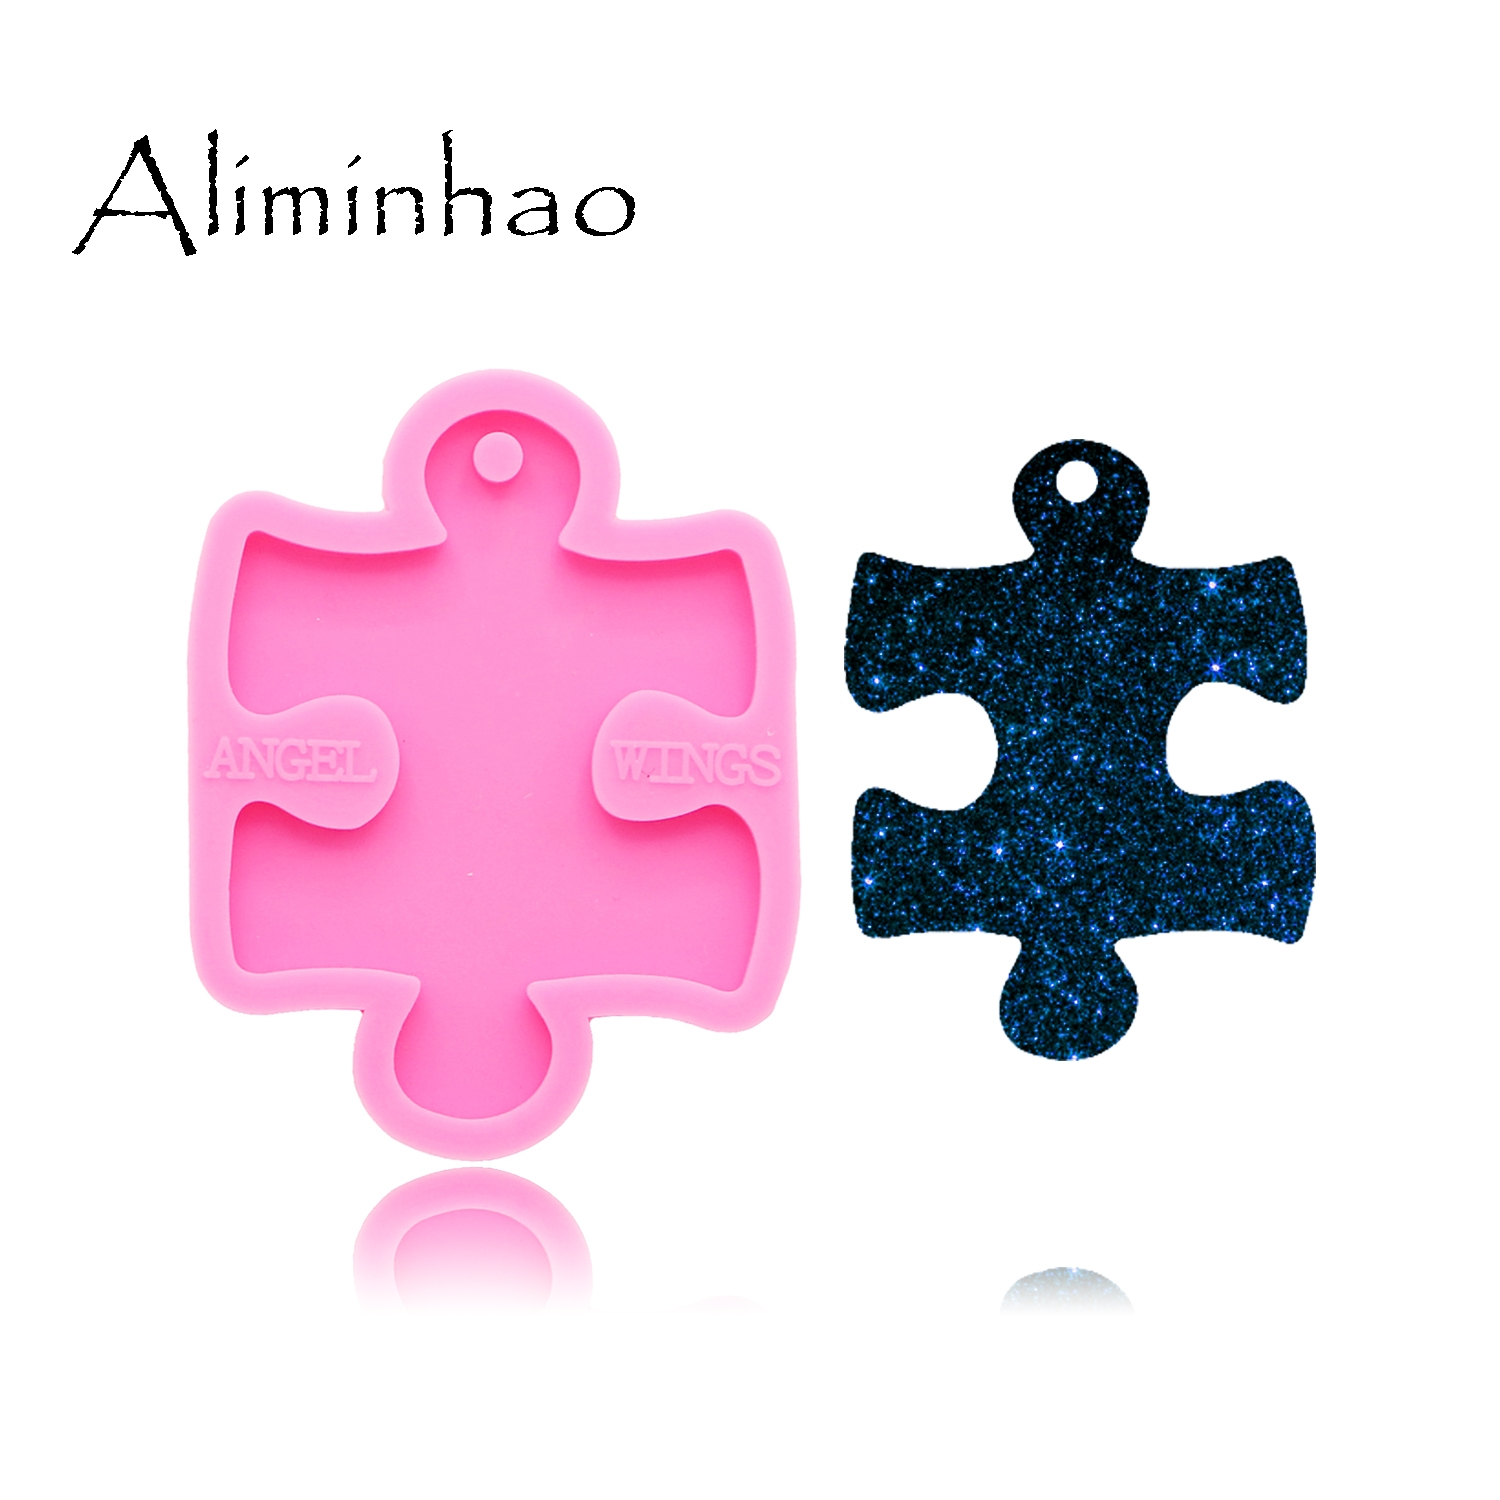 DY0135 Shiny Puzzle Silicone Molds DIY epoxy resin table mould silicon craft custom mold craft keychain|Cake Molds| |  - title=